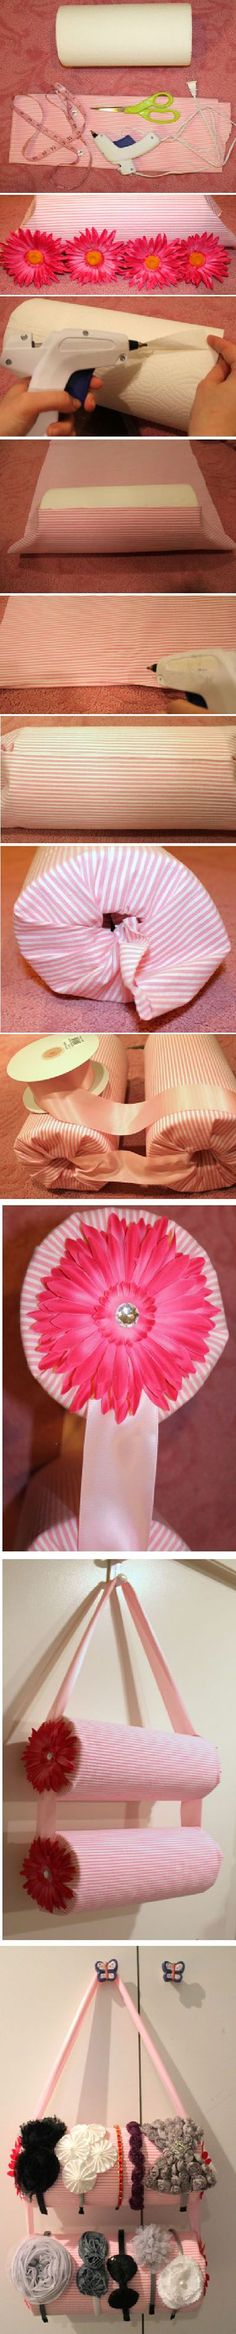 What a cute idea! I'd use the cheapest and worst papertowels I can find so I won't feel like I'm wasting them haha they are expensive!